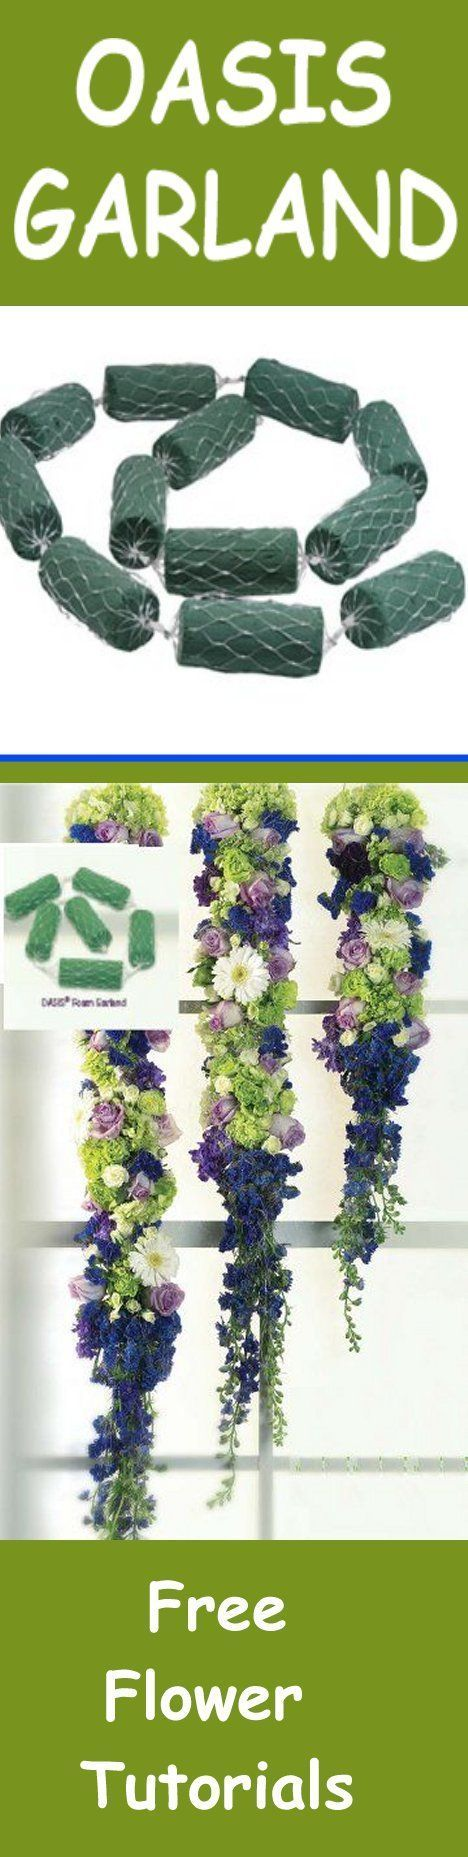 Floral Foam - Florist Supply for Weddings - Hanging Garland  Learn how to make bridal bouquets, wedding corsages, grooms boutonnieres, church and reception decorations and more.  Buy wholesale fresh flowers and discount florist supplies.: